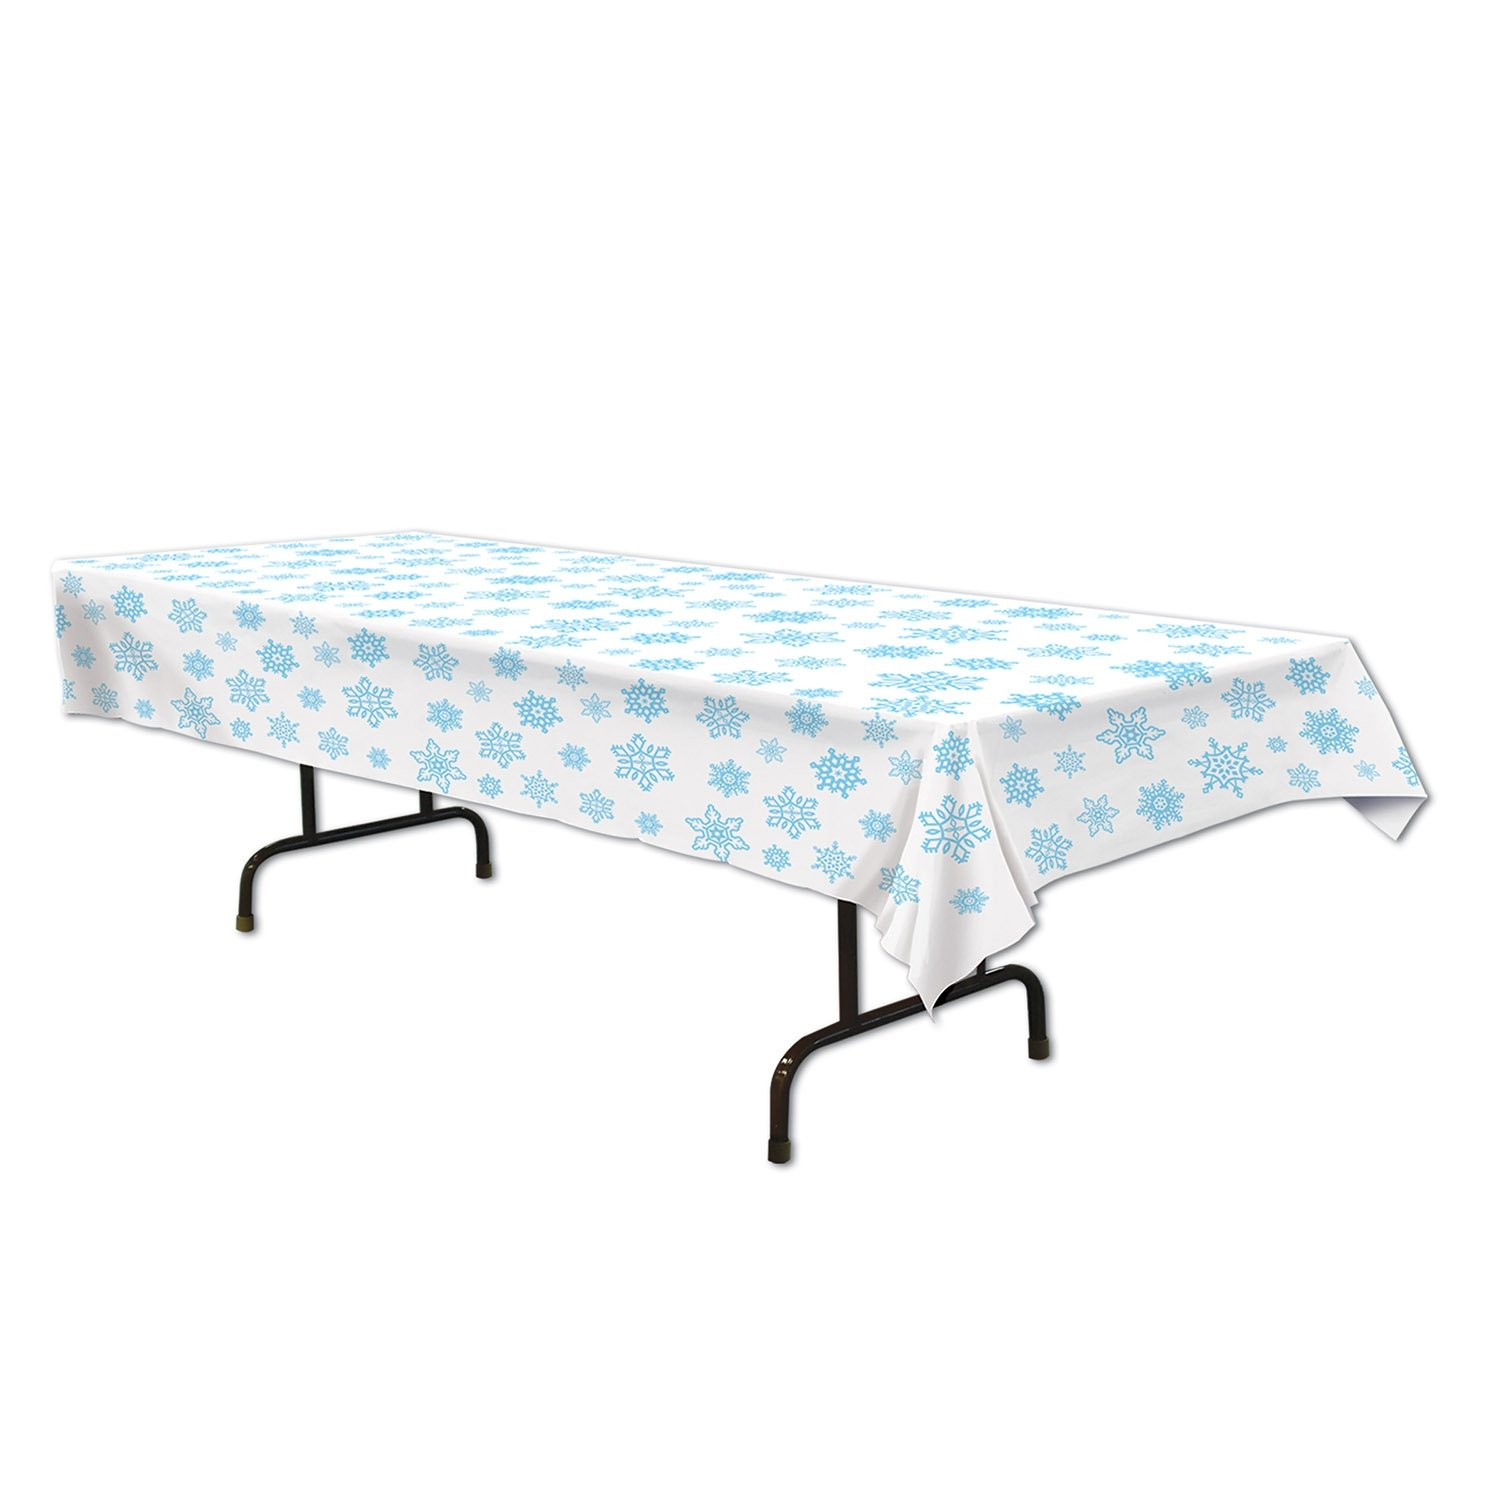 """Beistle 20432 Snowflake Tablecover, 54"""" x 108"""" The Beistle Company"""